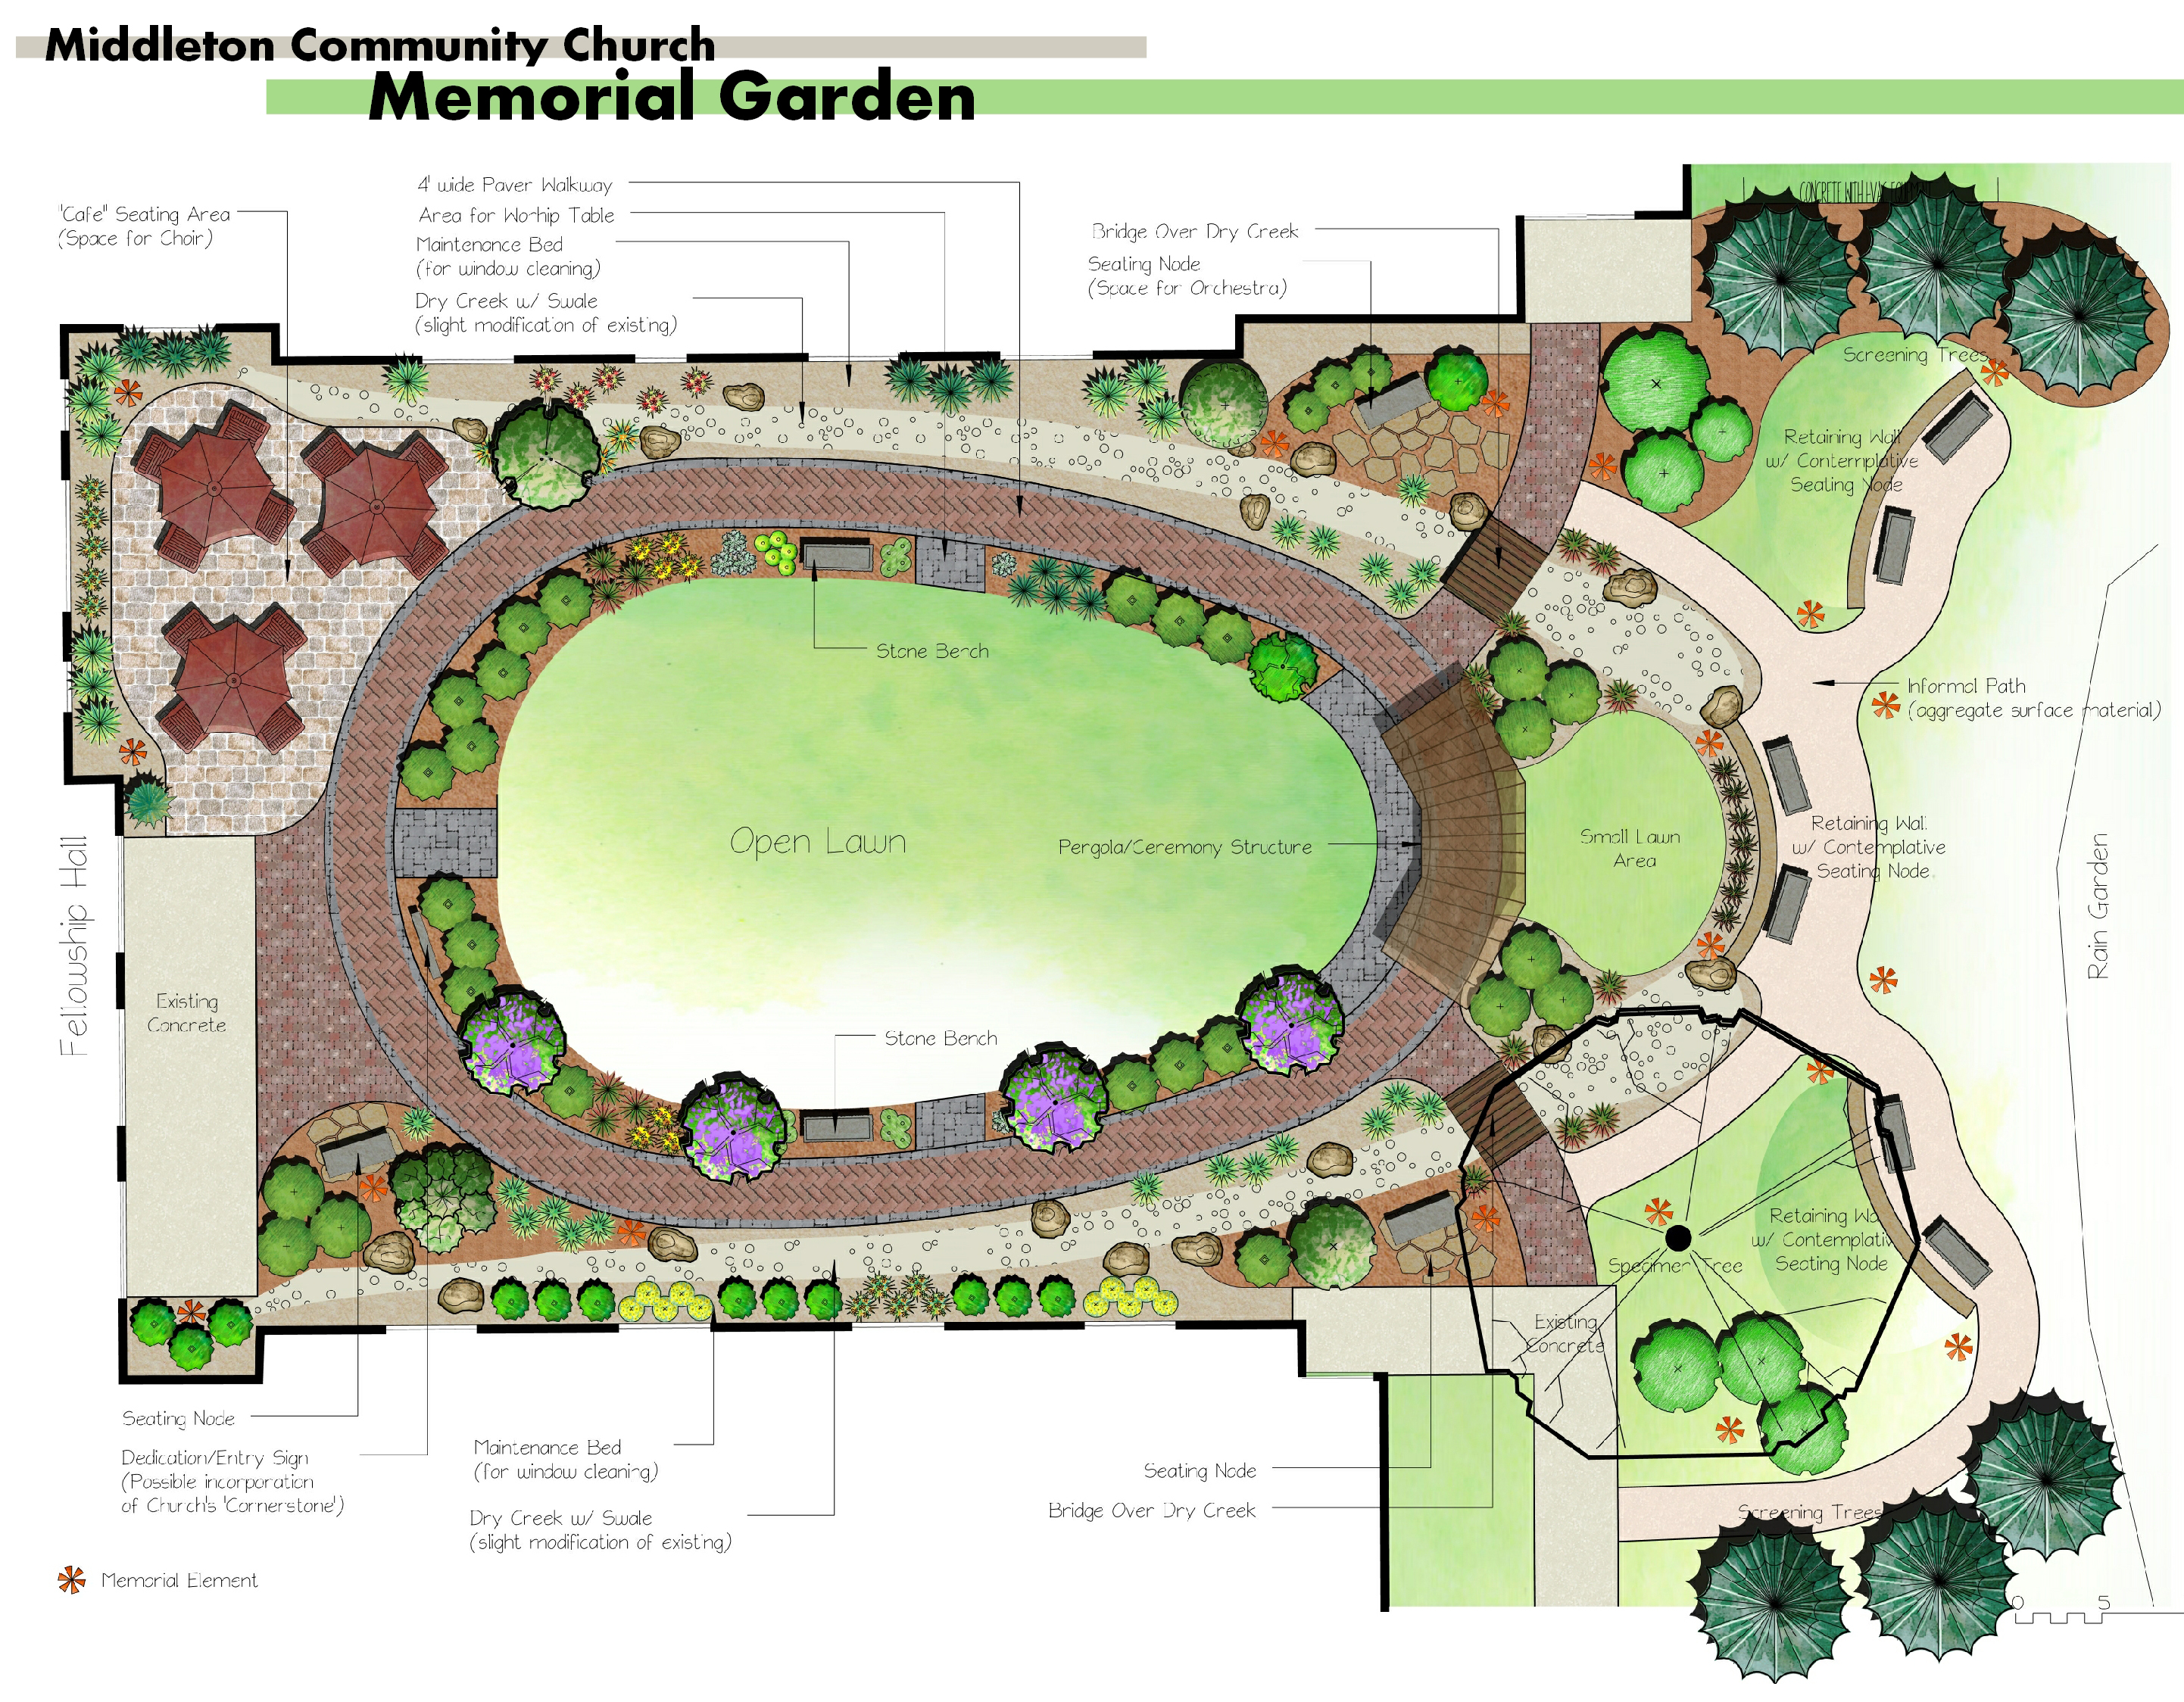 Our New Memorial Garden Is A Blessing To The Church And A Wonderful Place  To Commune With Godu0027s Beauty.